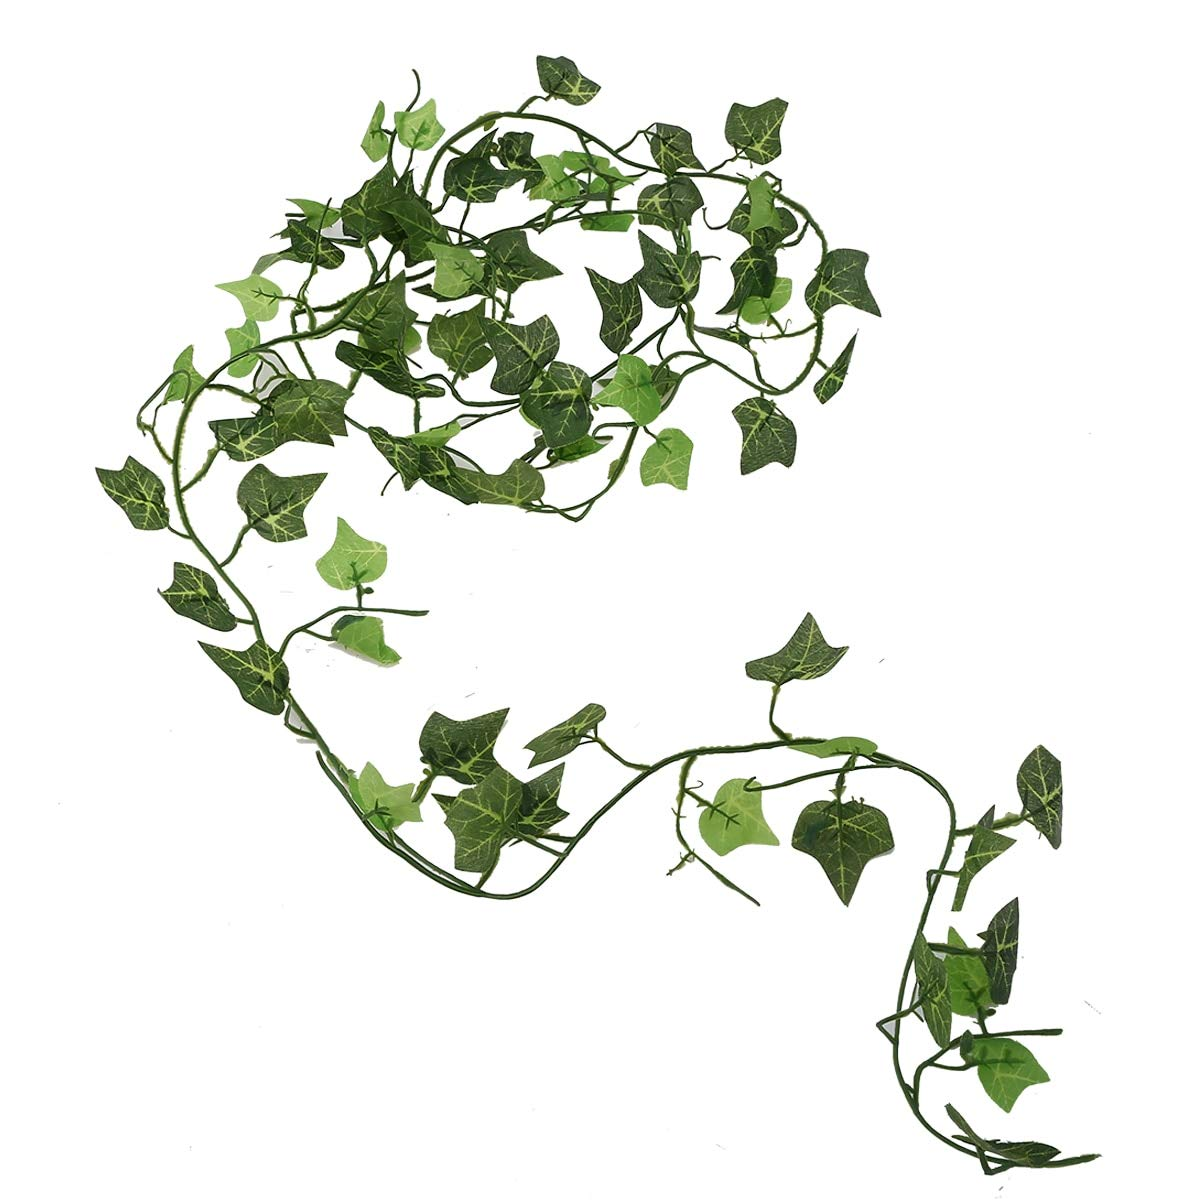 VHLL 2.4m Artificial Ivy Vine Leaf Fake Sweet Potato Foliage Garland Plant Home Wedding Decoration Hanging Garland Decor